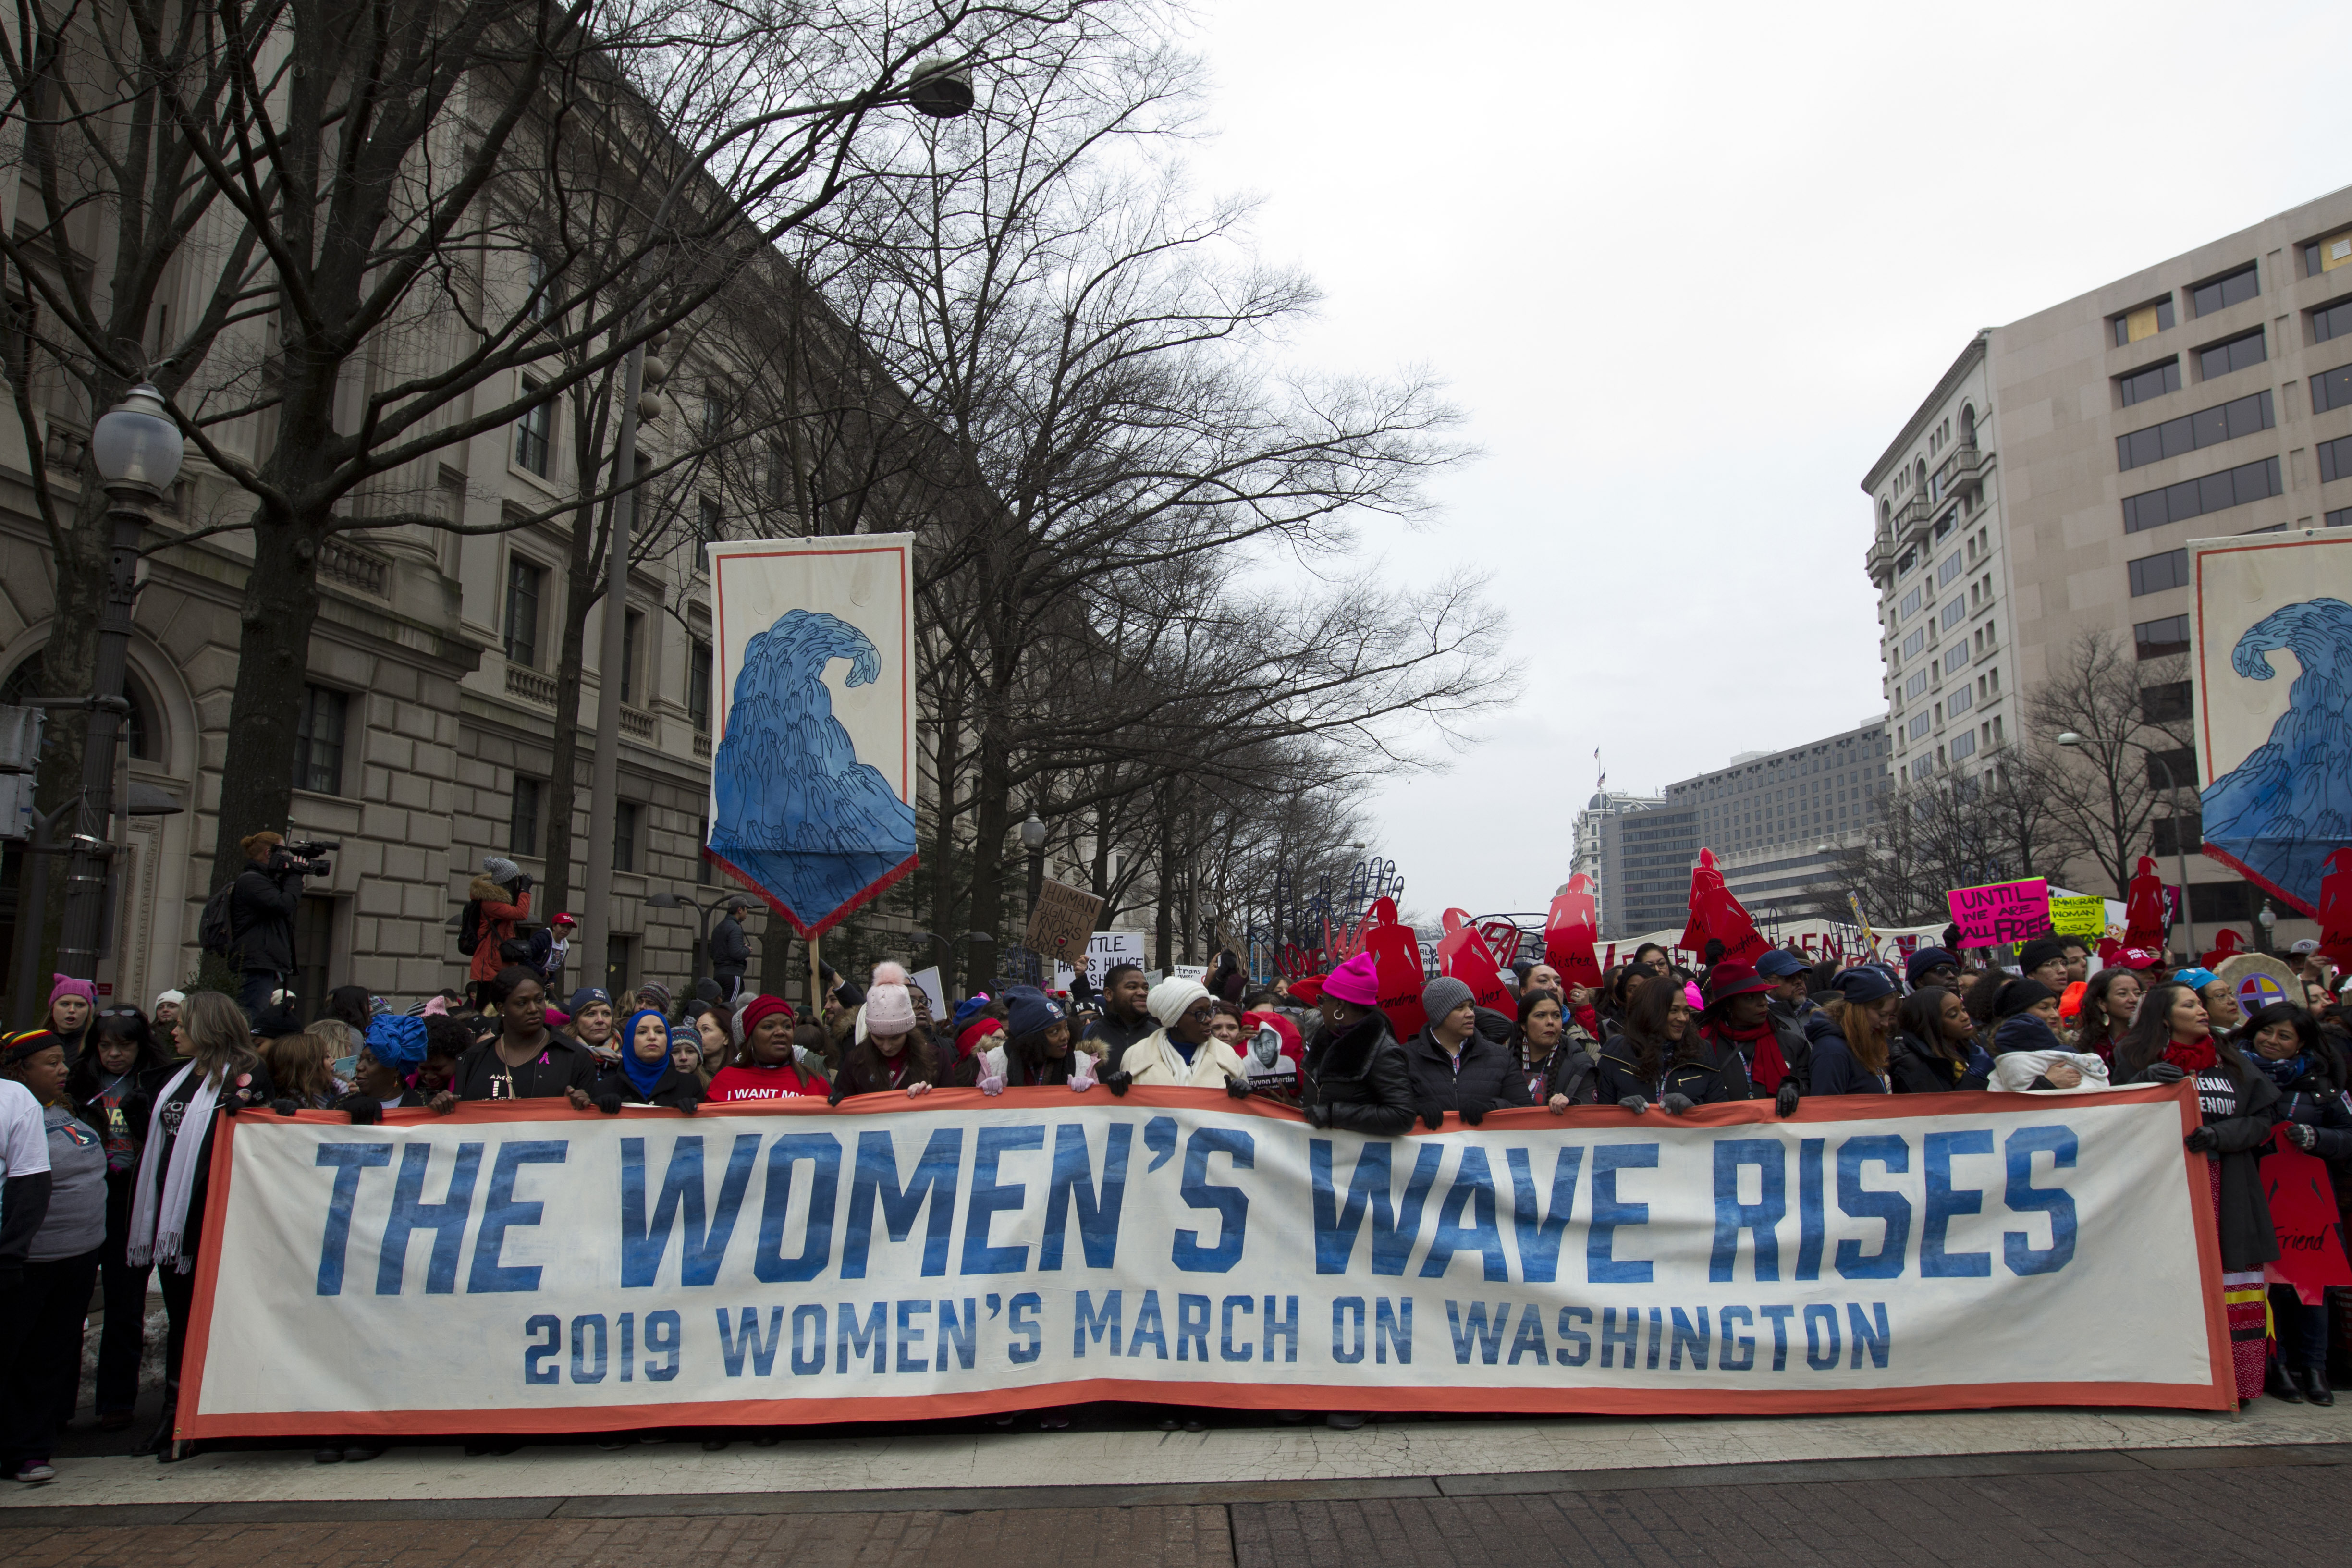 <div class='meta'><div class='origin-logo' data-origin='AP'></div><span class='caption-text' data-credit='AP Photo/Jose Luis Magana'>Demonstrators march on Pennsylvania Av. during the women's march in Washington on Saturday, Jan. 19, 2019.</span></div>